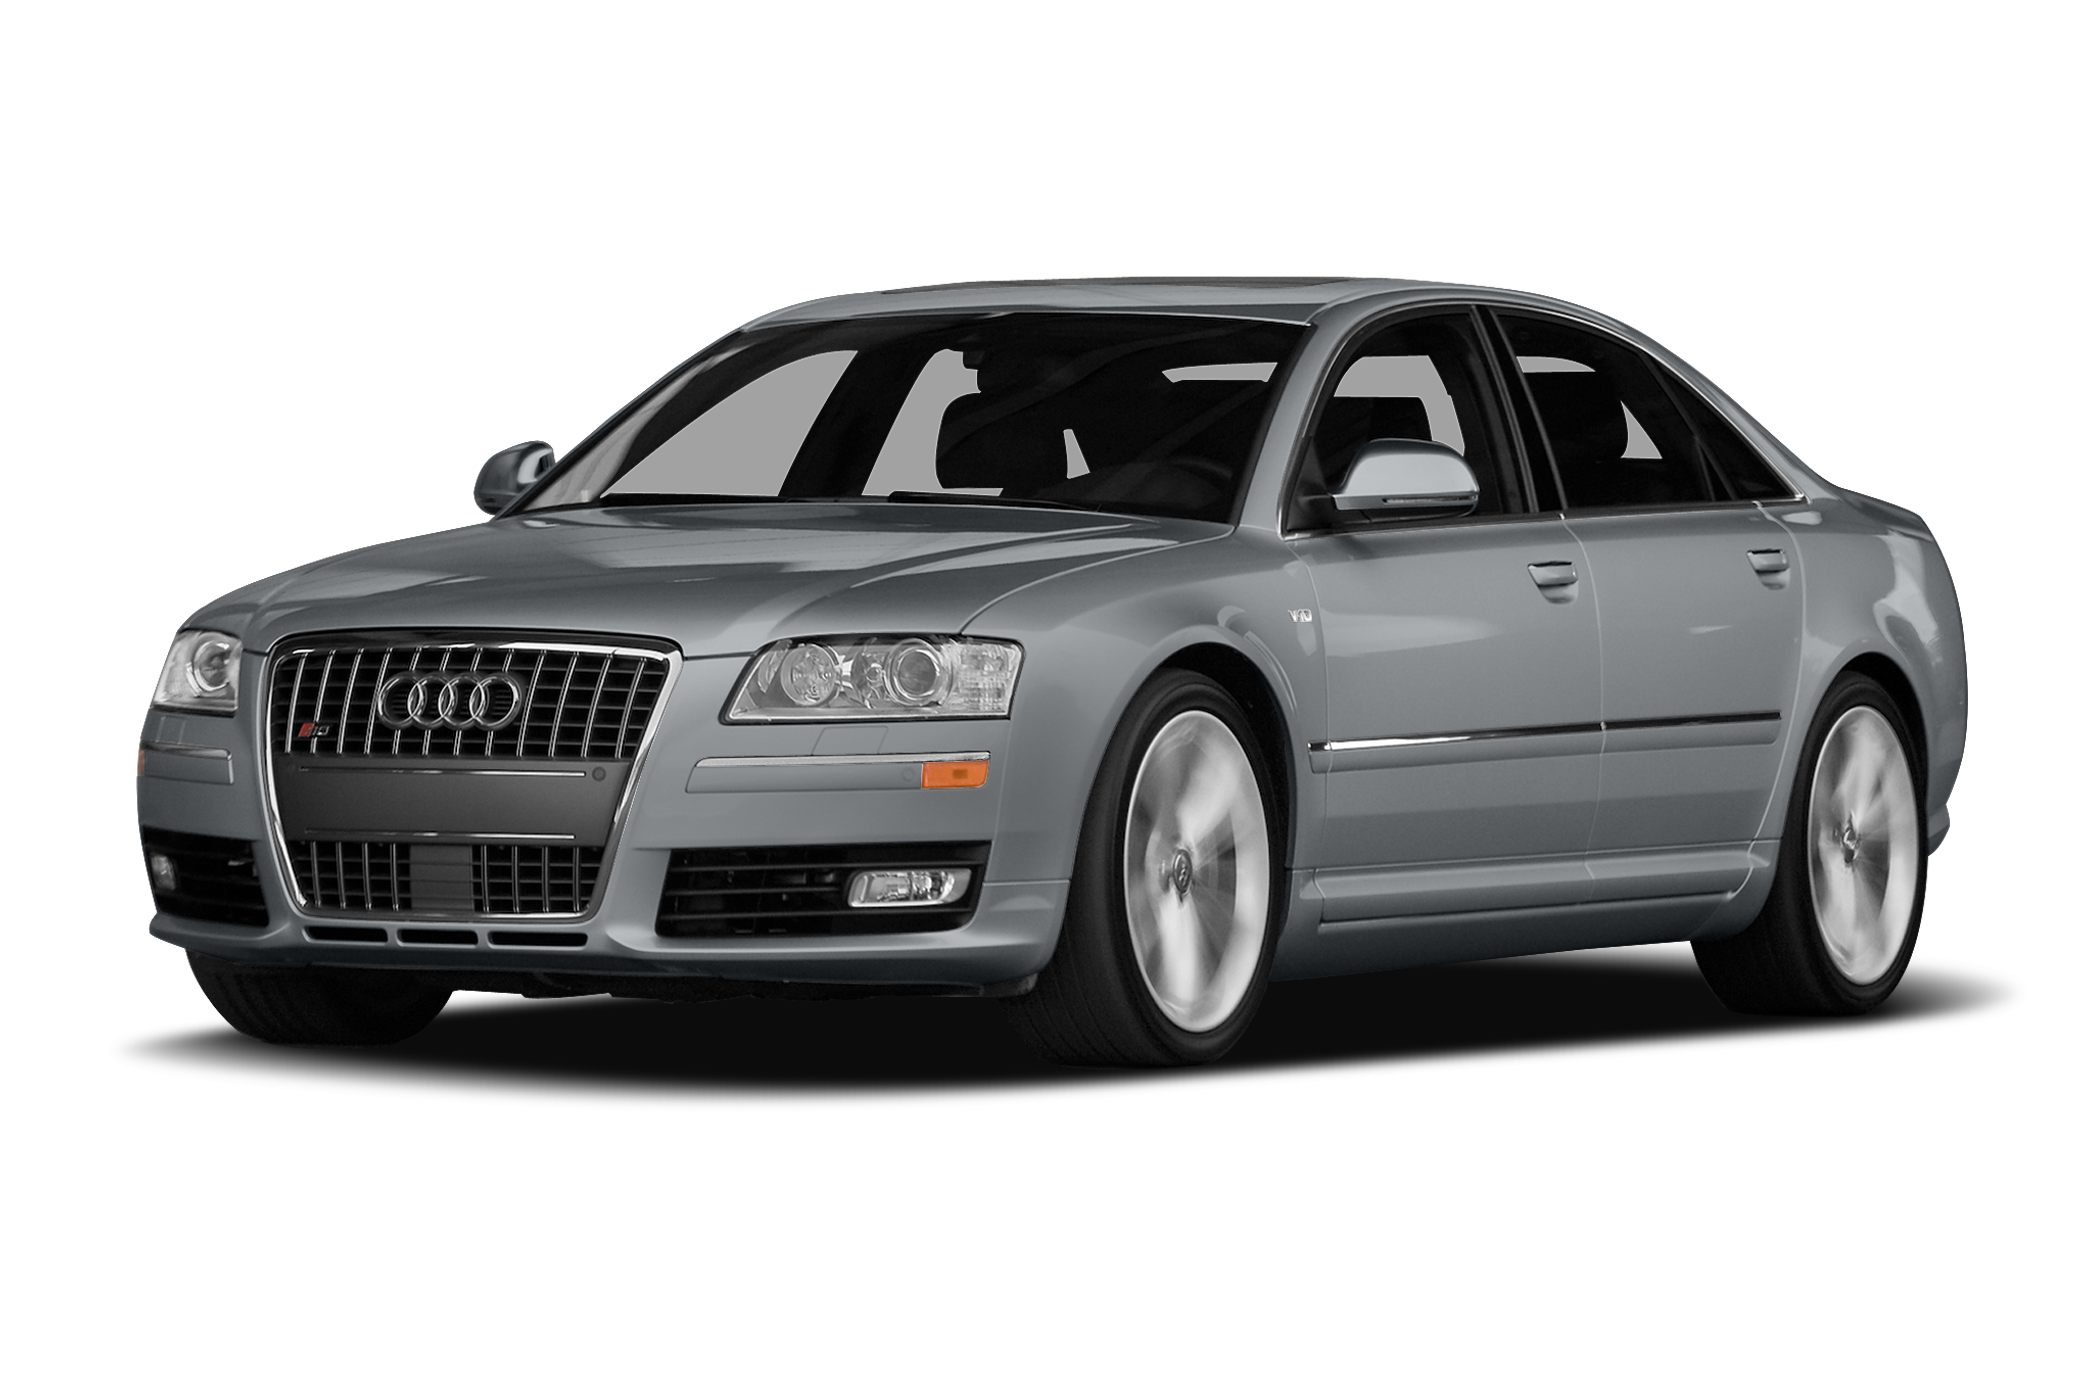 2008 Audi S8